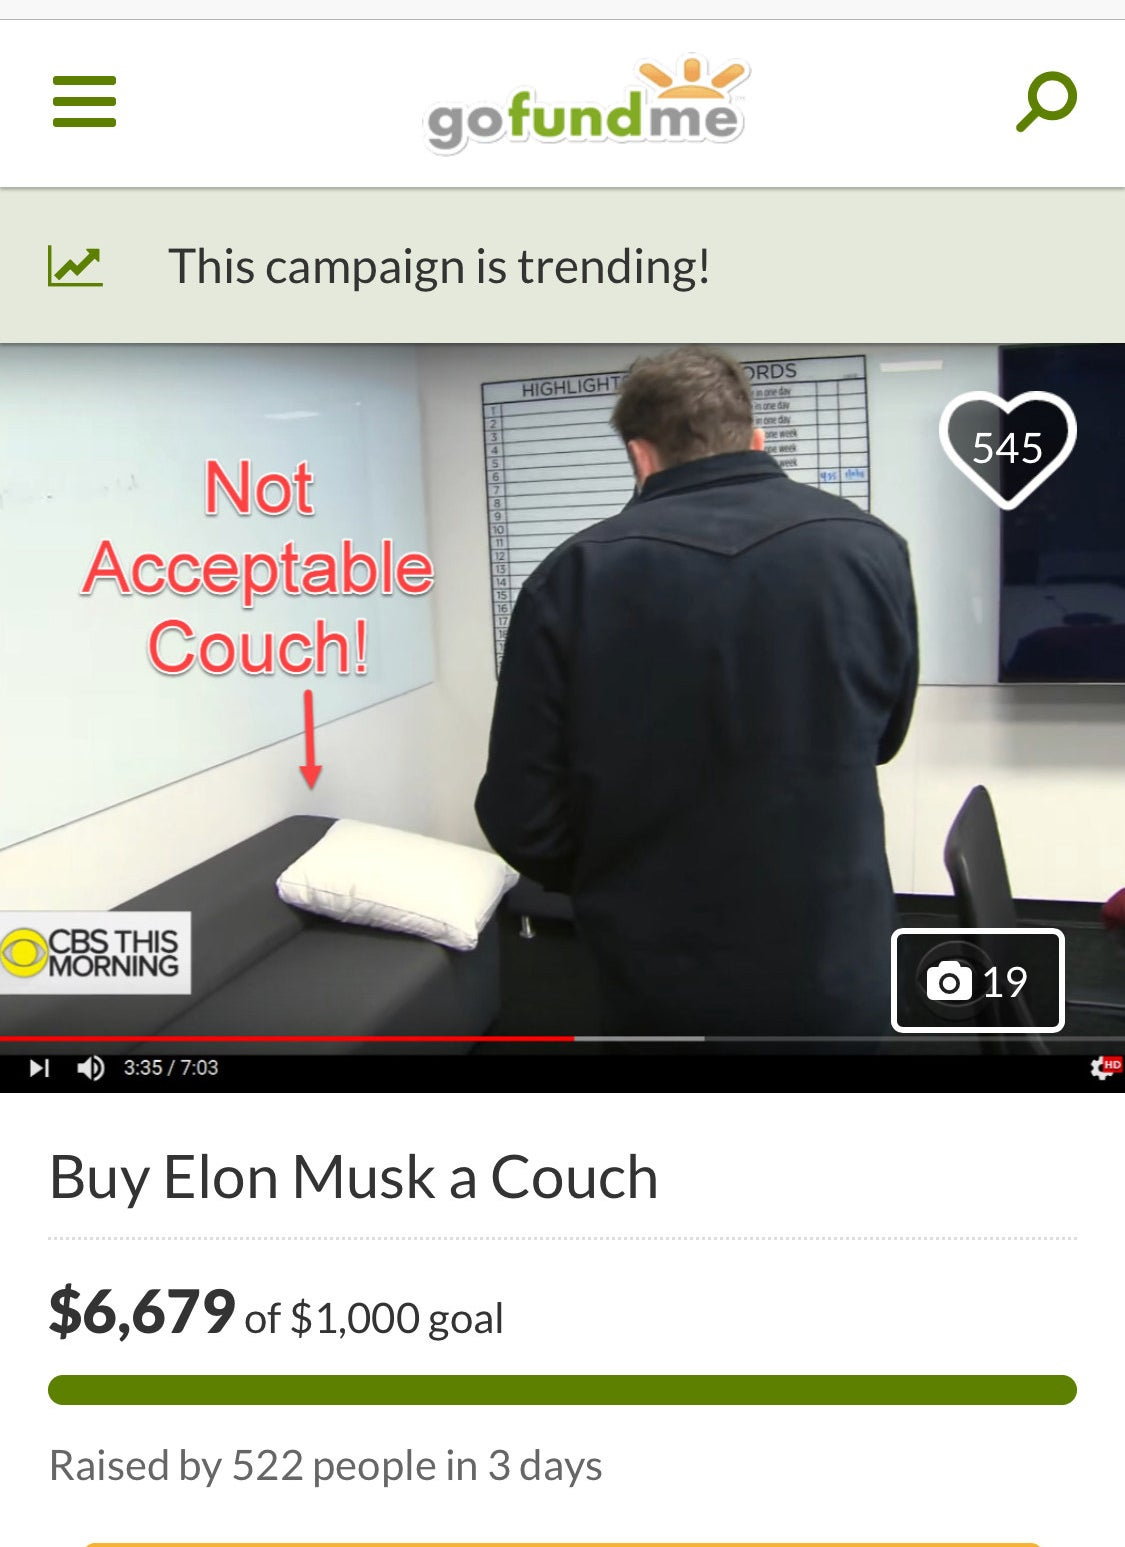 Now, a bunch of Musk fans who just want their boy to get a good night's sleep are crowdfunding to buy him a couch. This seems like a good time to point out Musk has a reported net worth of almost $20 billion.